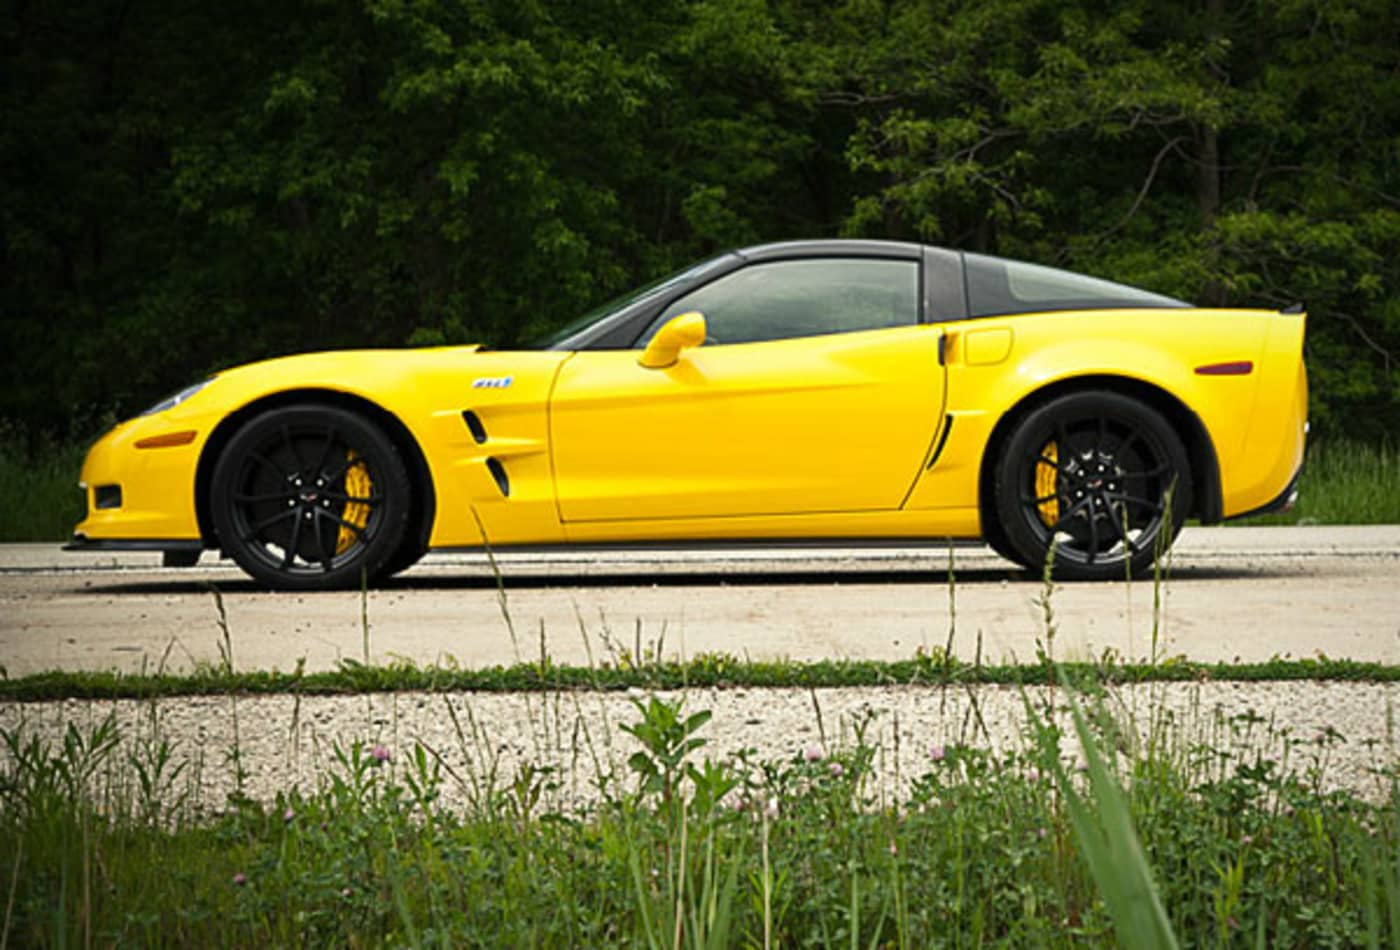 Chevrolet-Corvette-ZR1-10-Fastest-Cars-2013-CNBC.jpg